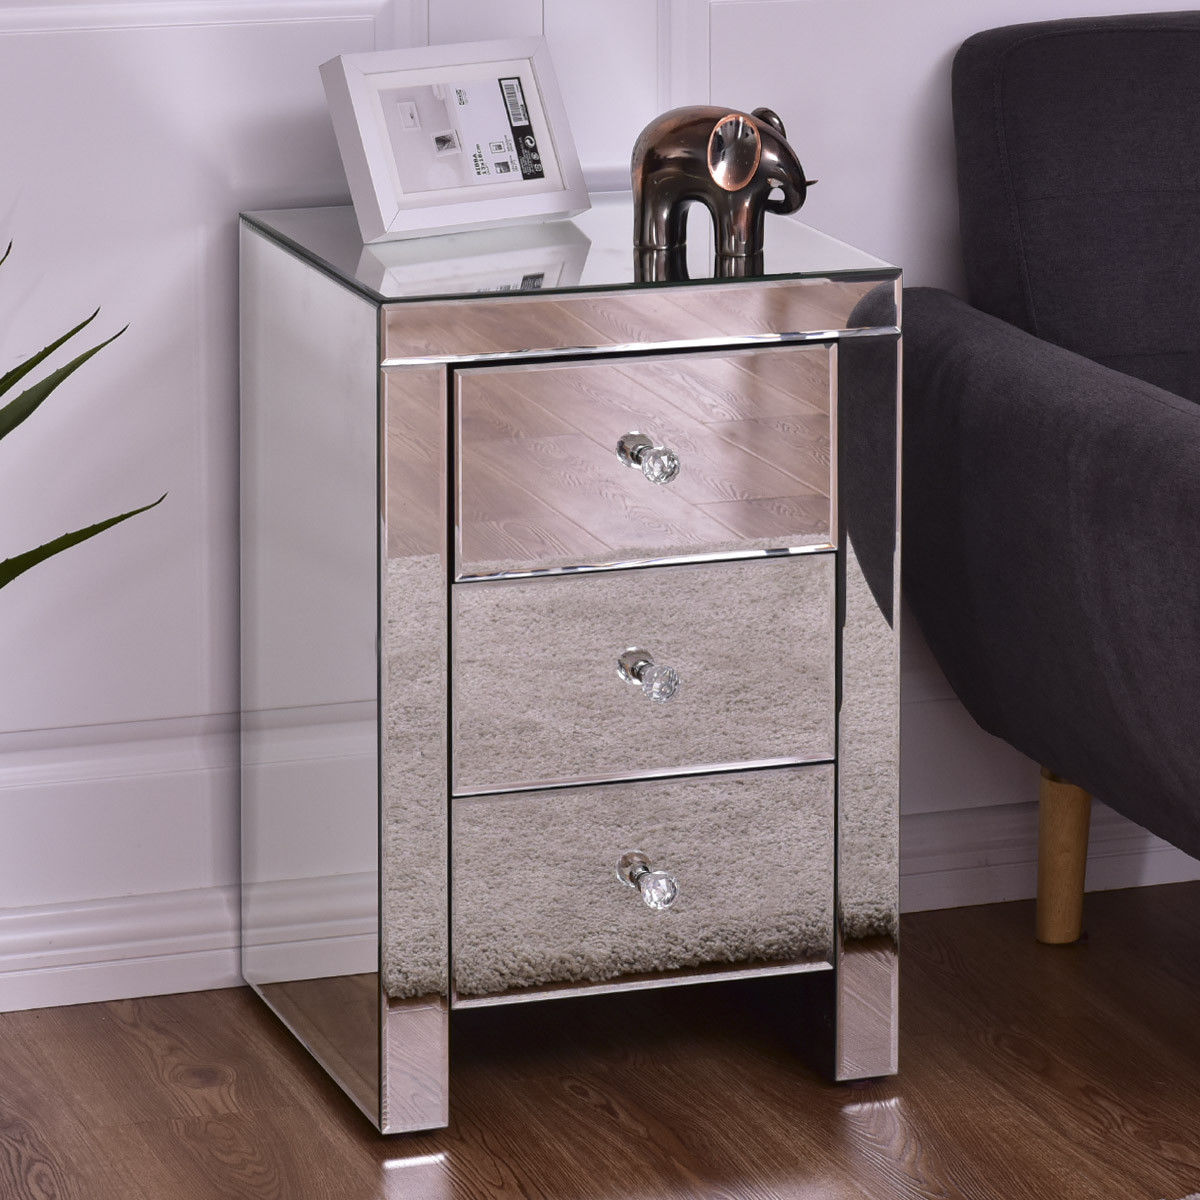 giantex drawer mirrored nightstand home accent table chest dresser modern storage silver glass bedroom furniture gray nightstands from trends white floating headboard room wall